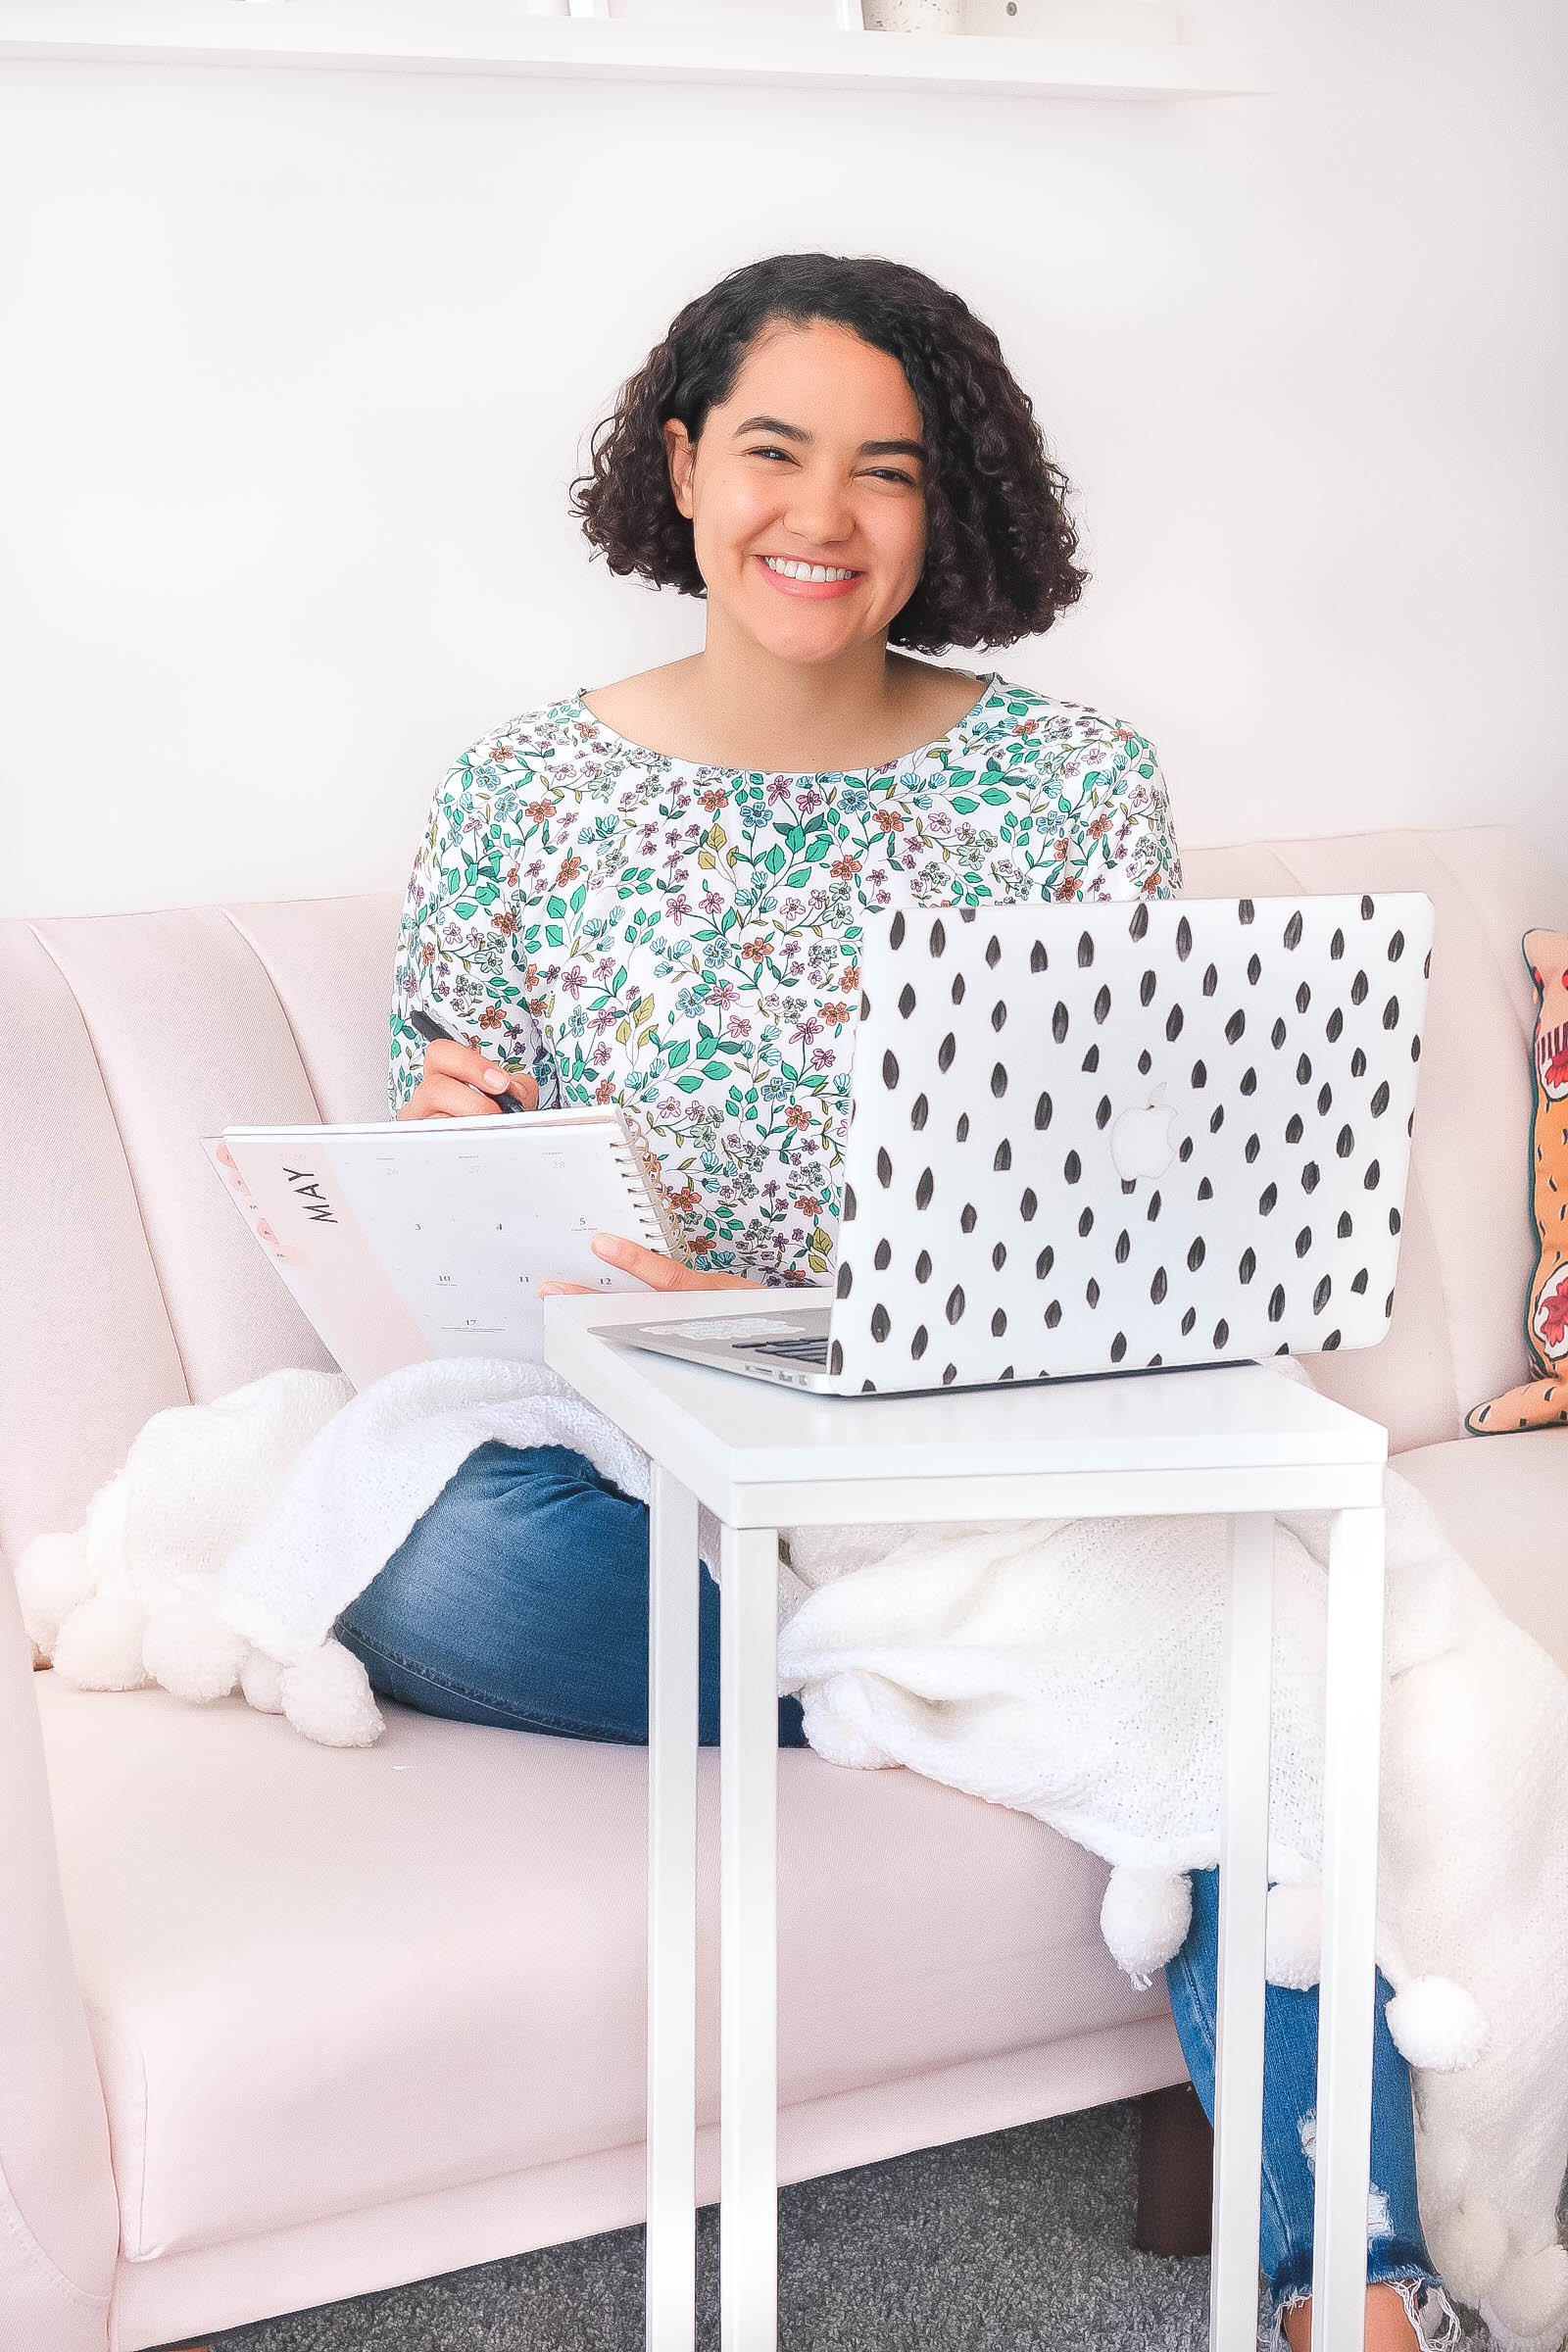 Girl with curly hair sitting on her couch working on her laptop and writing something down.